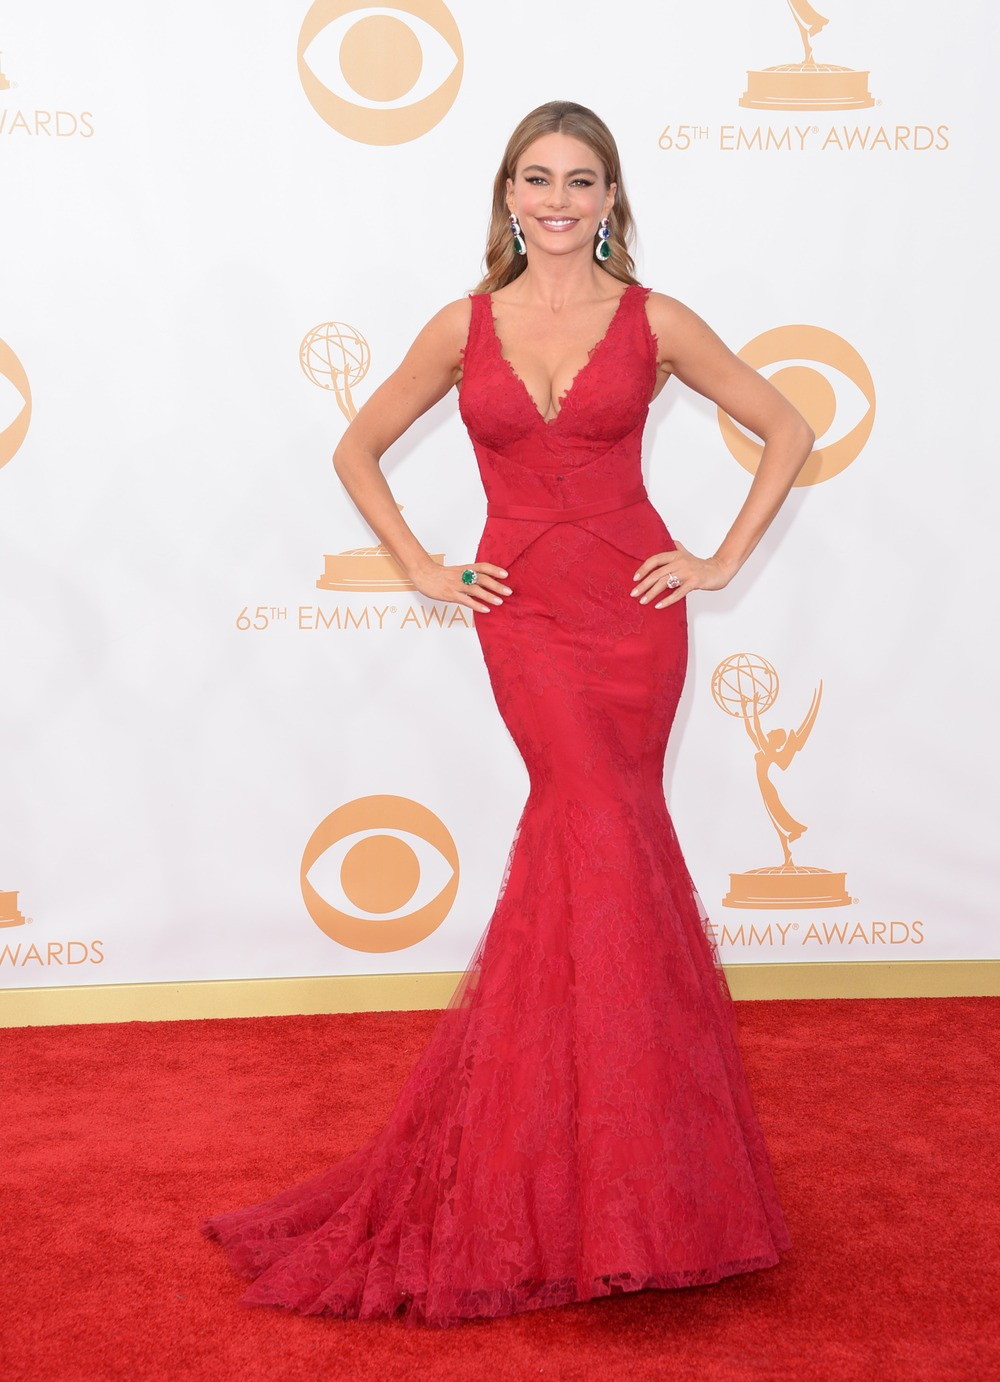 Sofia Vergara at 2013 Emmys: Modern Family Star Rocks Red Cleavage-Baring Dress — Hot or Not (PHOTO)